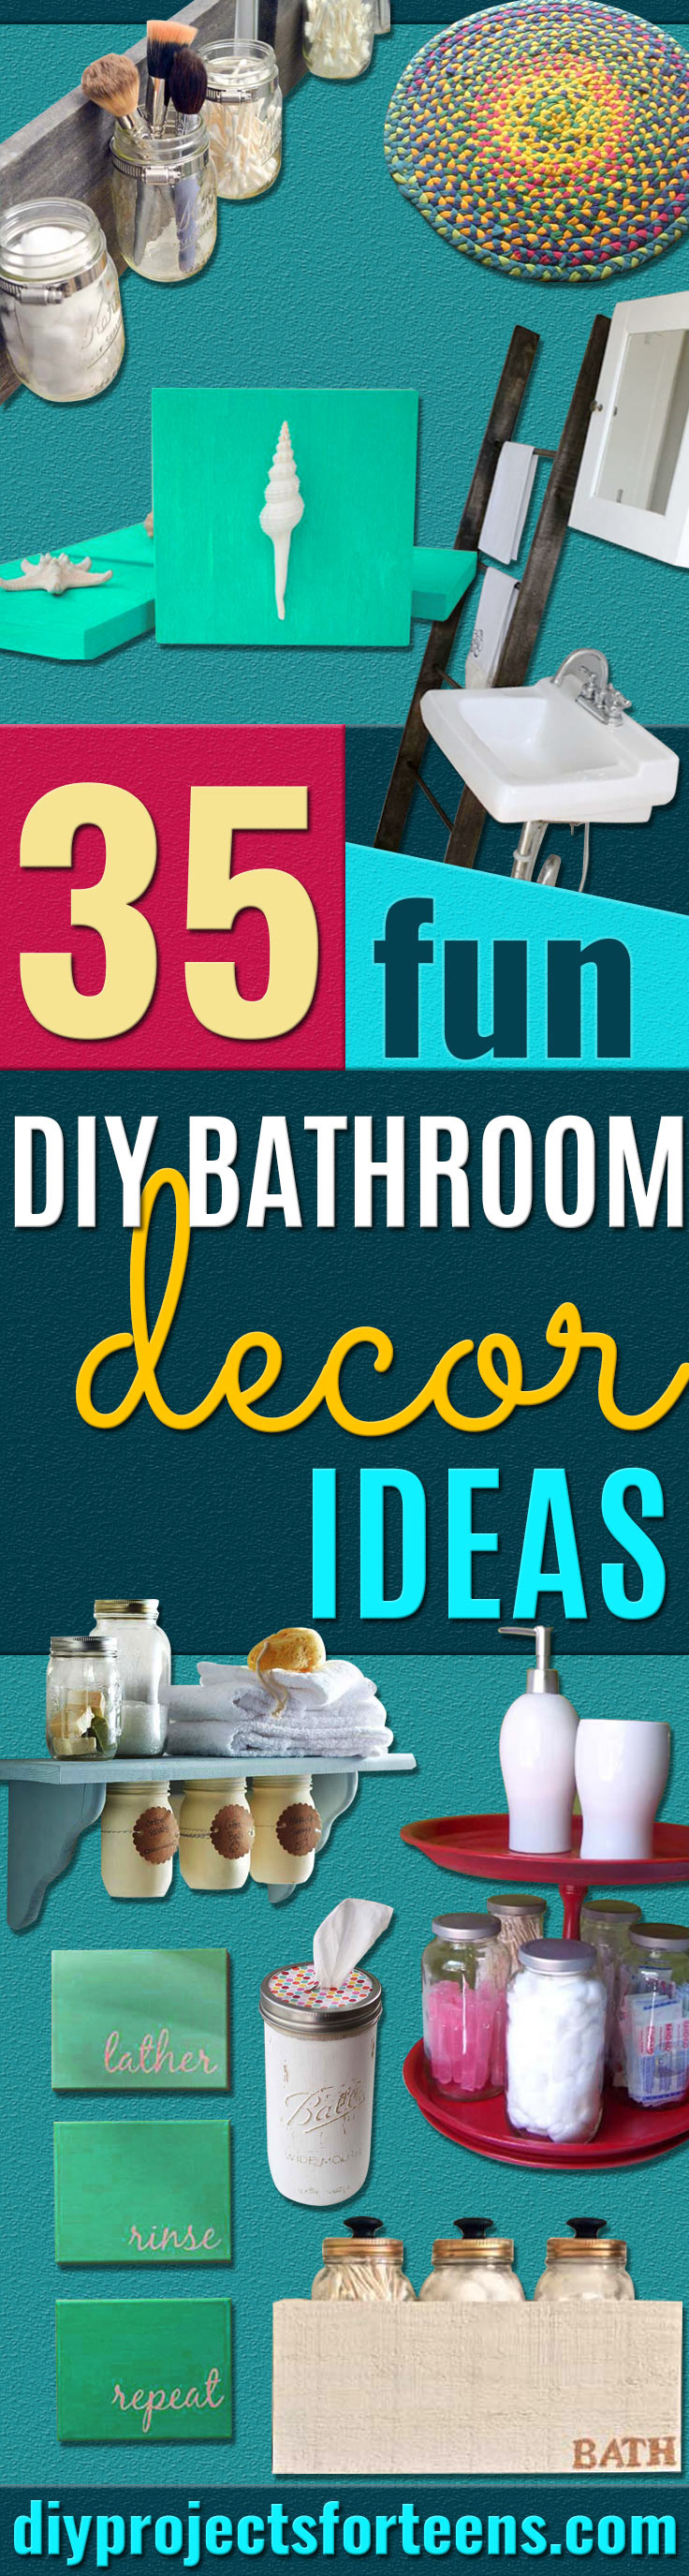 Bathroom decor ideas diy - Diy Bathroom Decor Ideas For Teens Best Creative Cool Bath Decorations And Accessories For